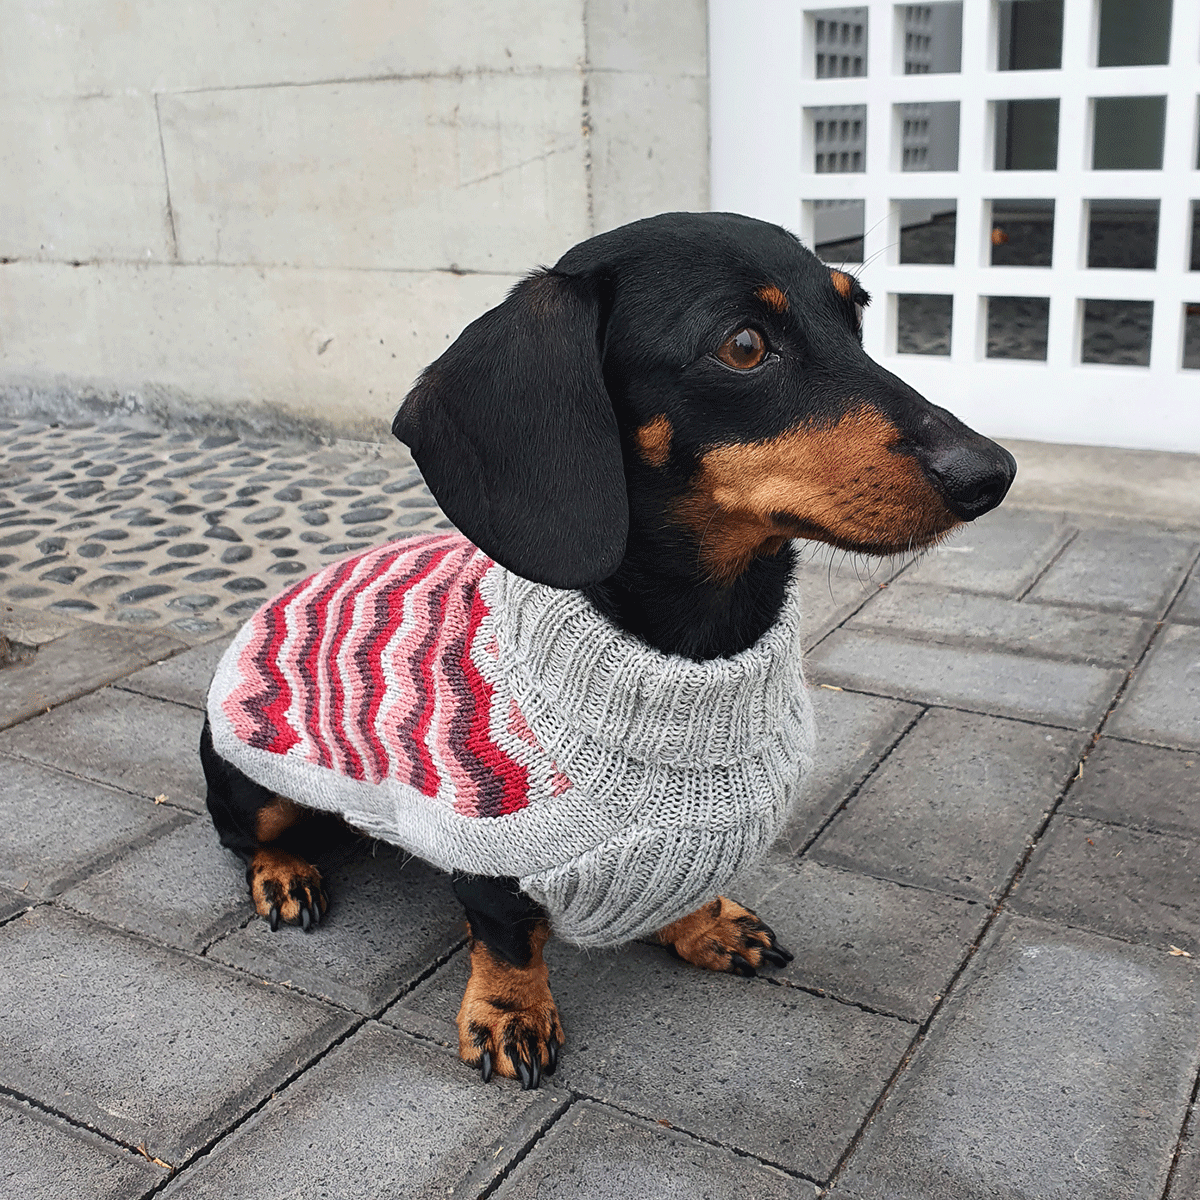 Chevron Pink-Collection 2020: Alqo Wasi alpaca sweater for dogs